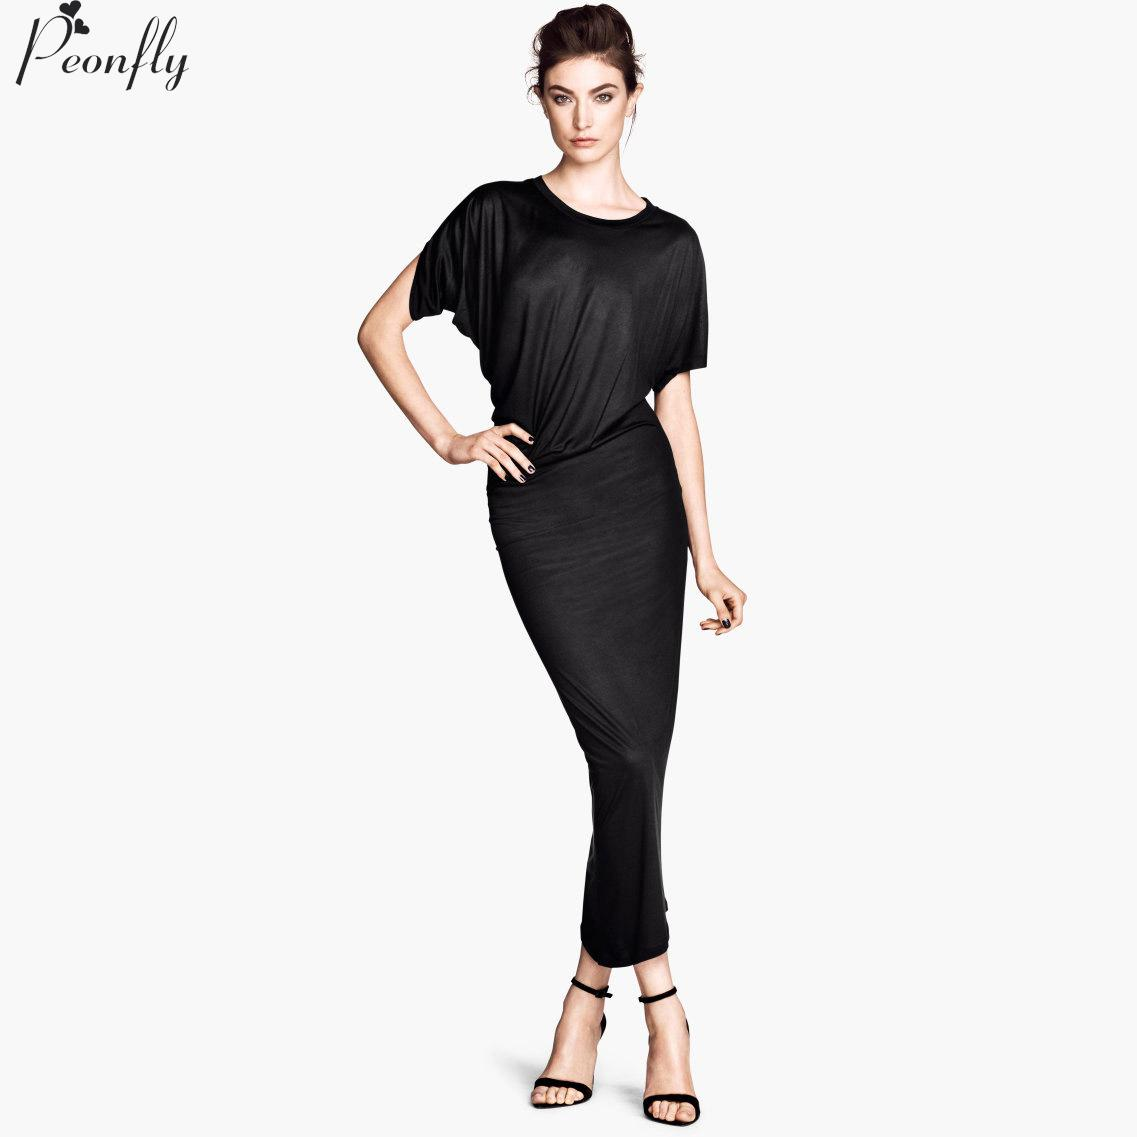 2016 Summer Long Dresses Asymmetric Cut Drape Slim Stretch Knit Short Sleeve Casual Dress Black And Gray 2 Colors(China (Mainland))